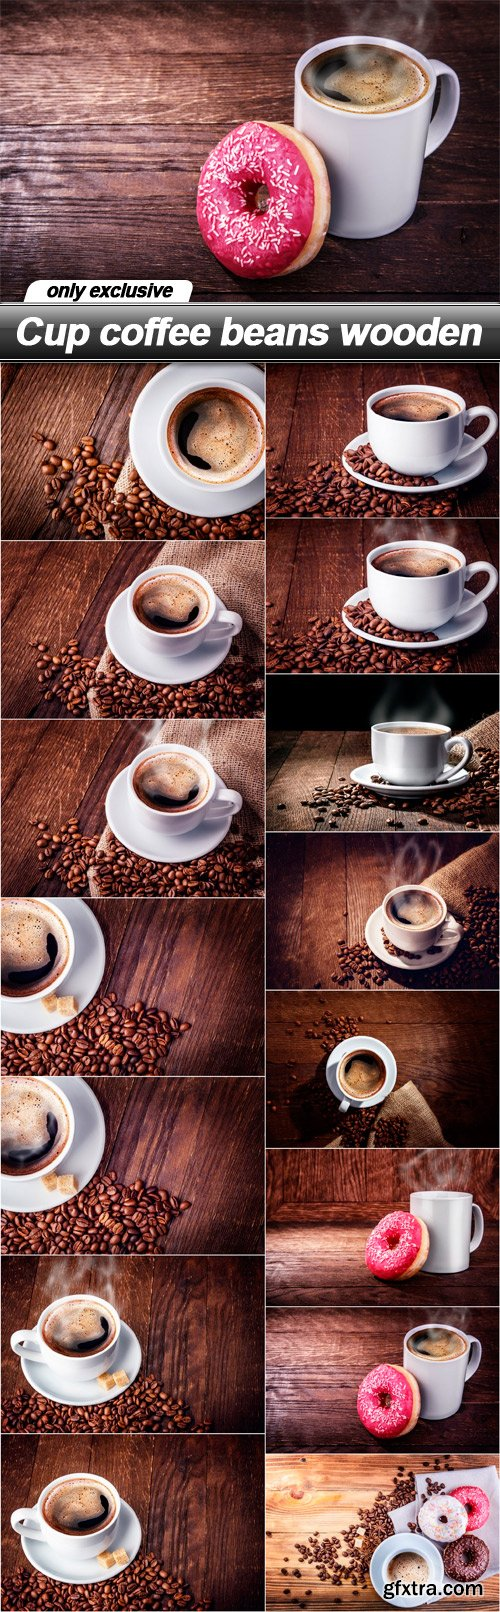 Cup coffee beans wooden - 15 UHQ JPEG